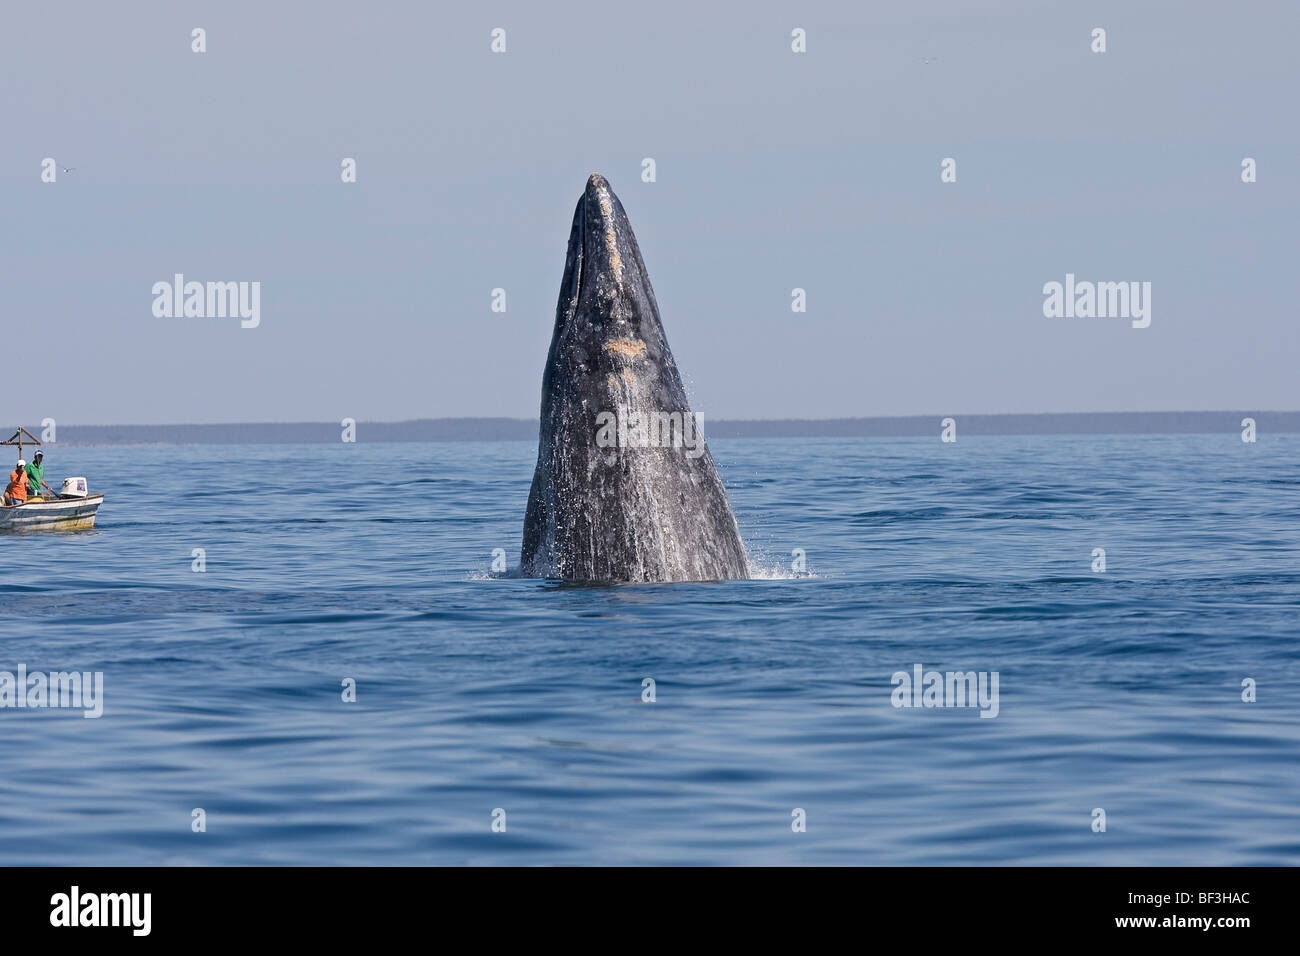 Gray Whale, Grey Whale (Eschrichtius robustus, Eschrichtius gibbosus) spyhopping in front of whale-watching boats. - Stock Image